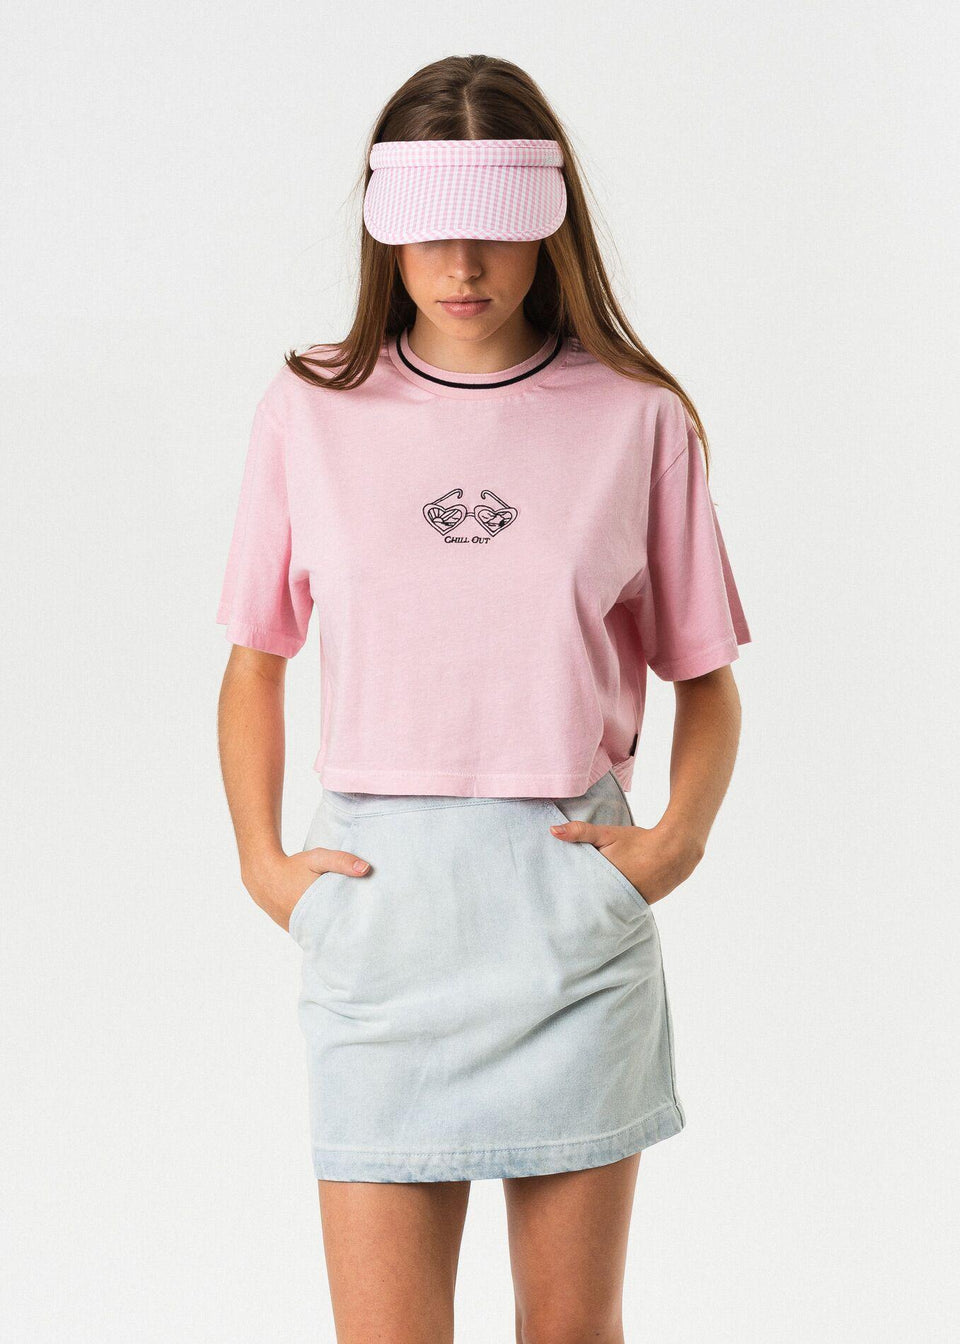 Ana Rita Box Fit Tee - Saint Street